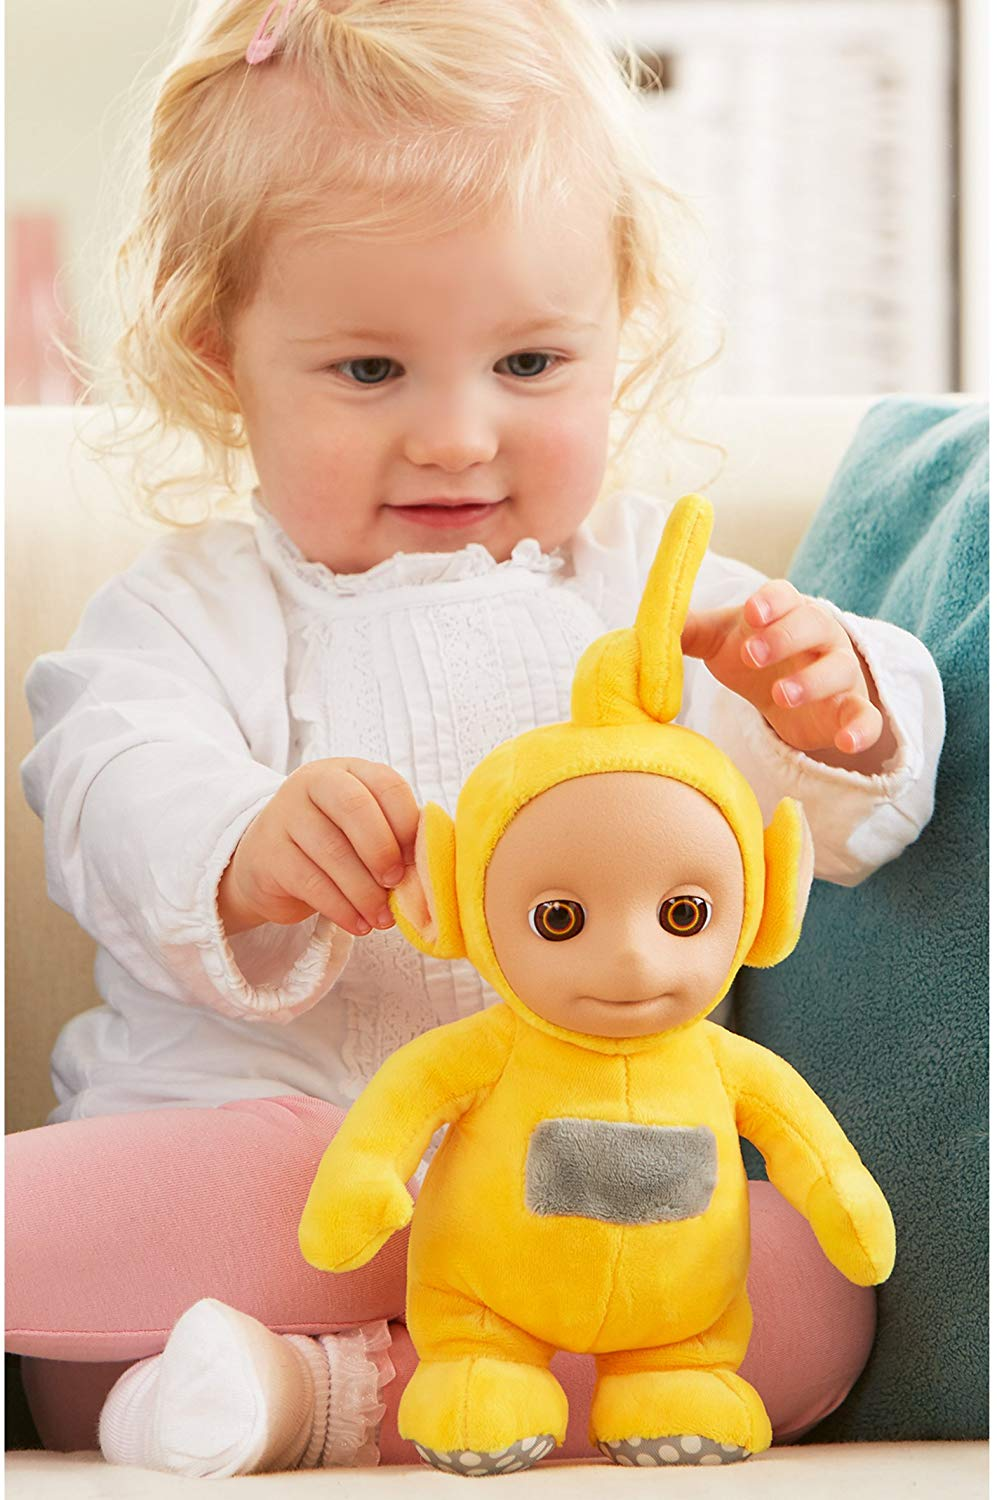 Teletubbies Cbeebies Talking Laa Soft Toy